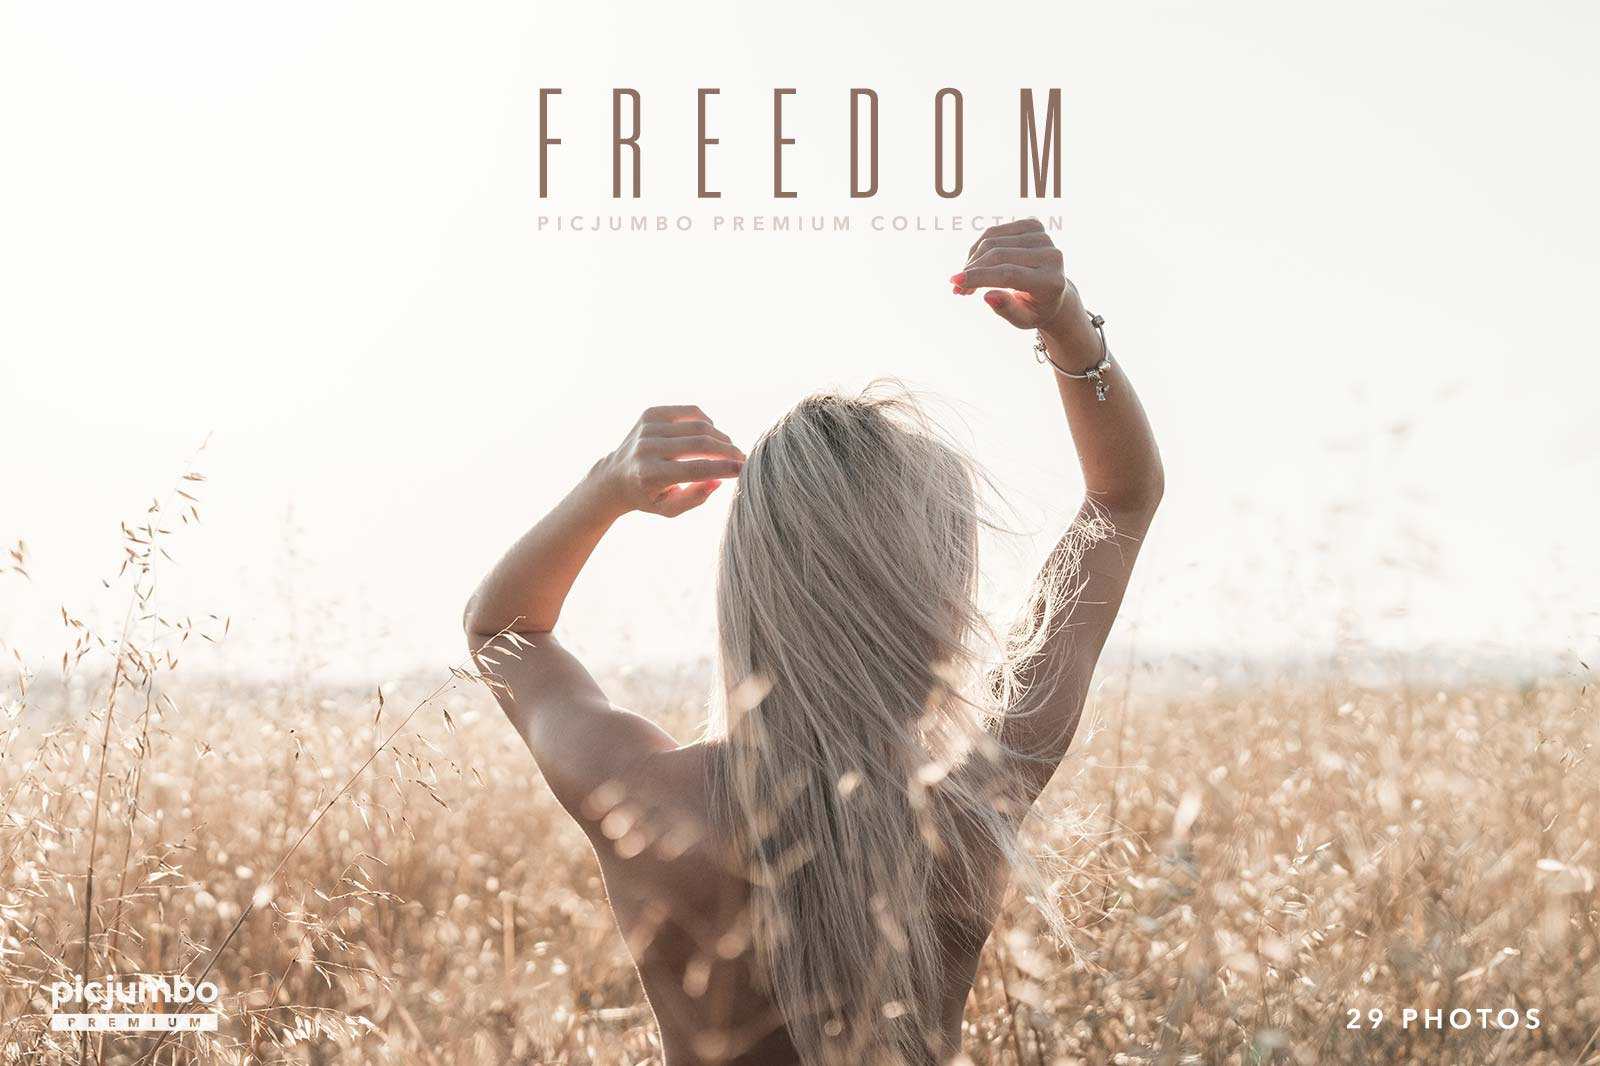 Freedom — get it now in picjumbo PREMIUM!